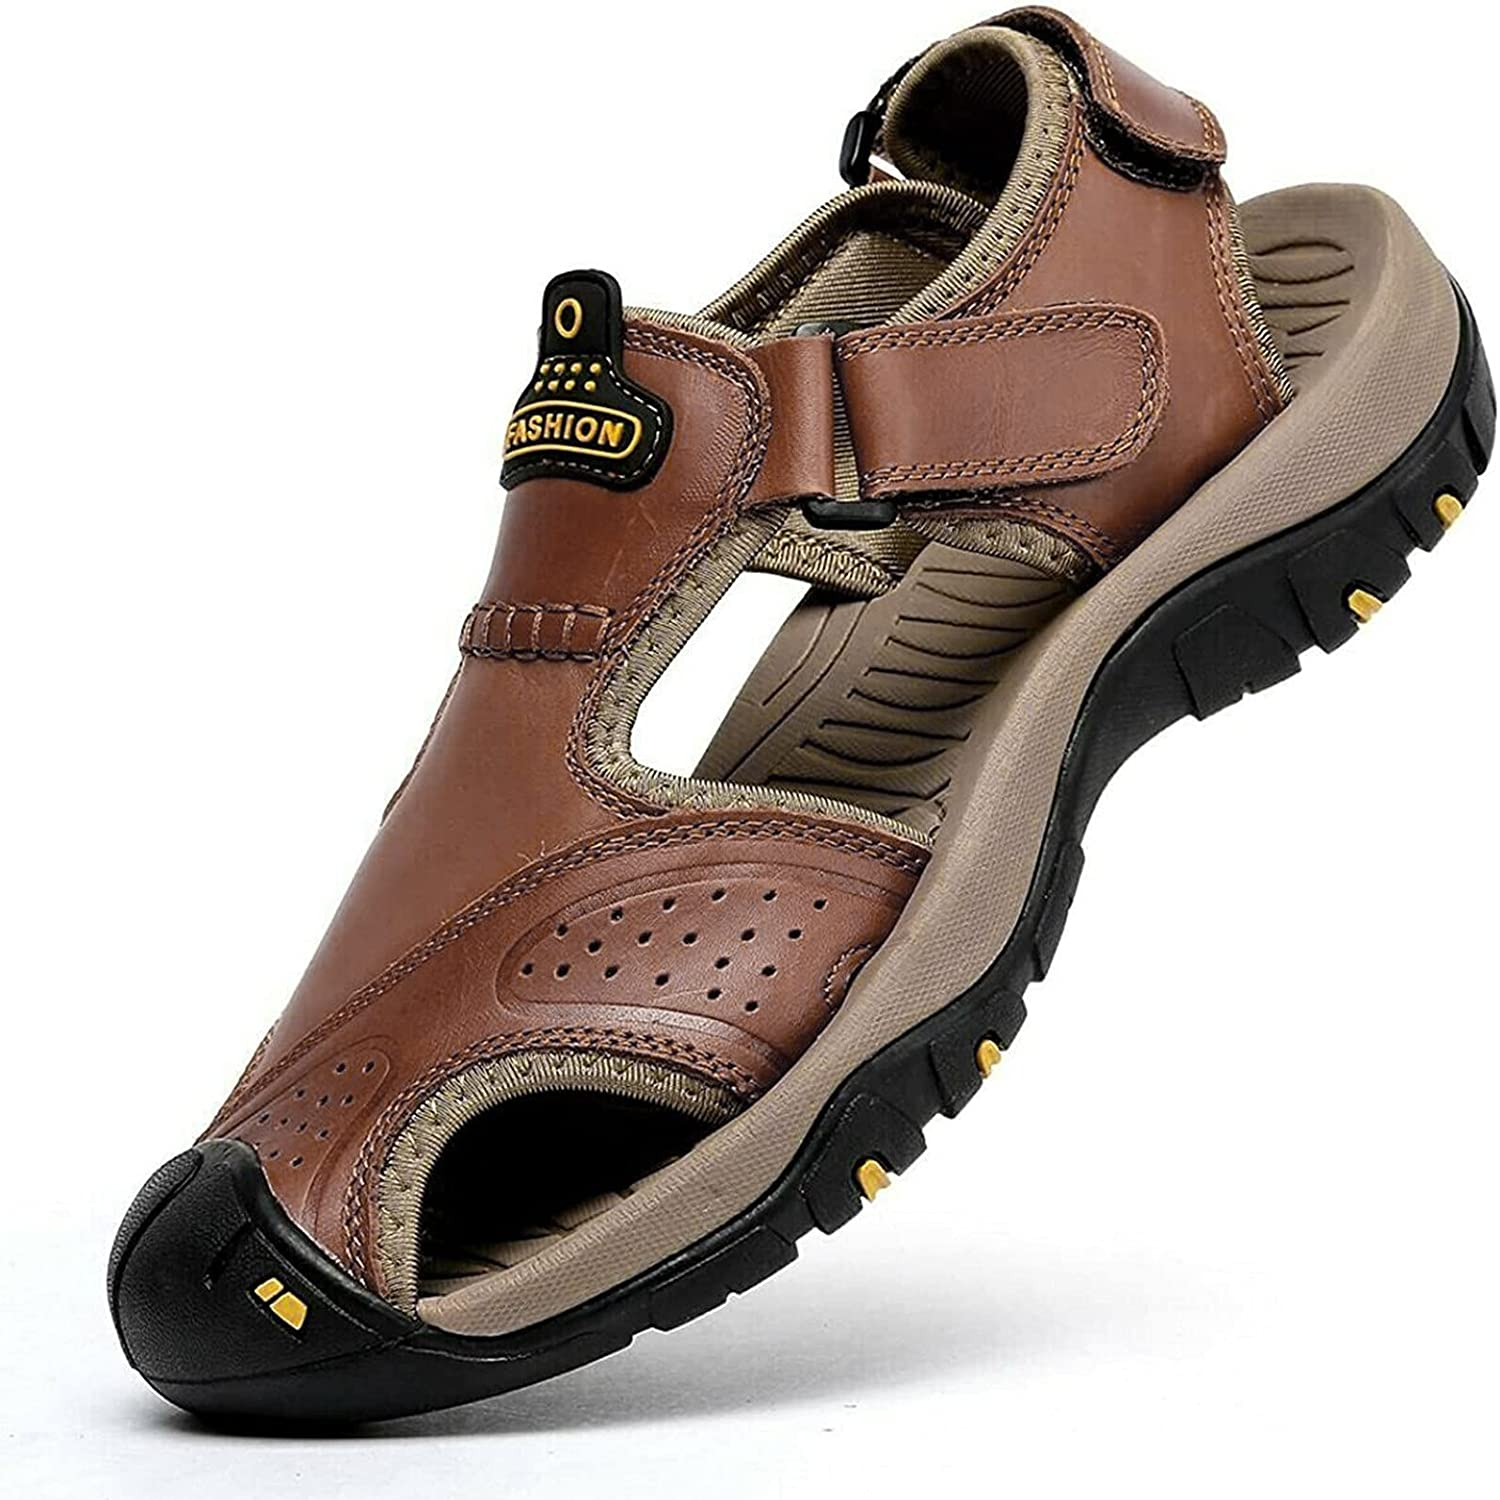 Today's only Bomden Gorgeous Outdoor Mens Sandals Non-Slip Anti-Kick Leather